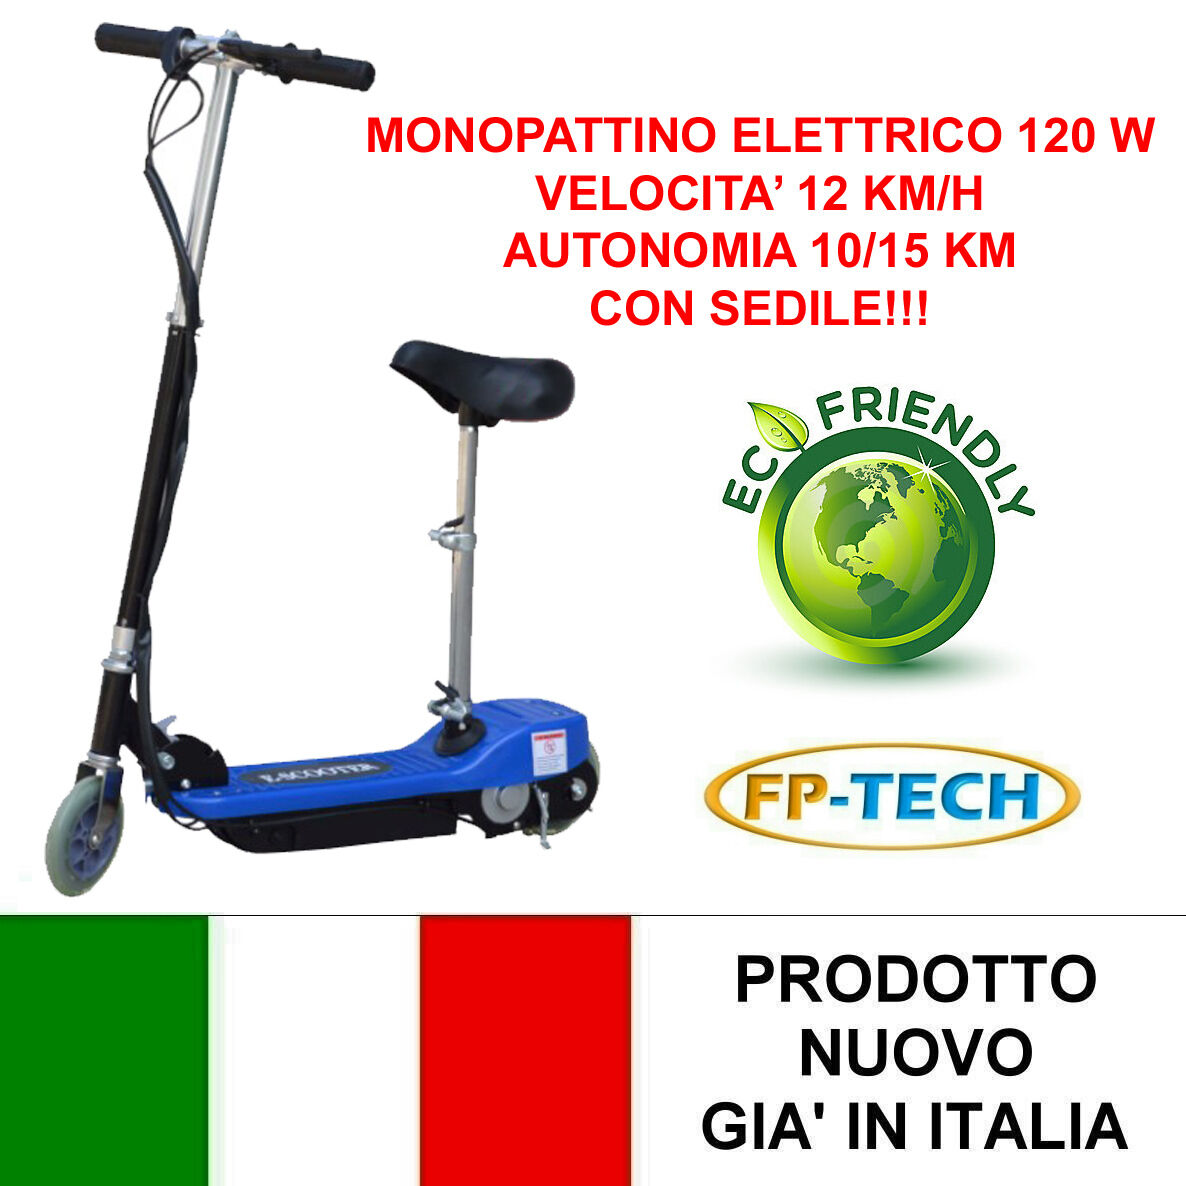 MONOPATTINO ELETTRICO 24 V 120W E-SCOOTER BICICLETTA ELETTRICA FULL OPTIONAL